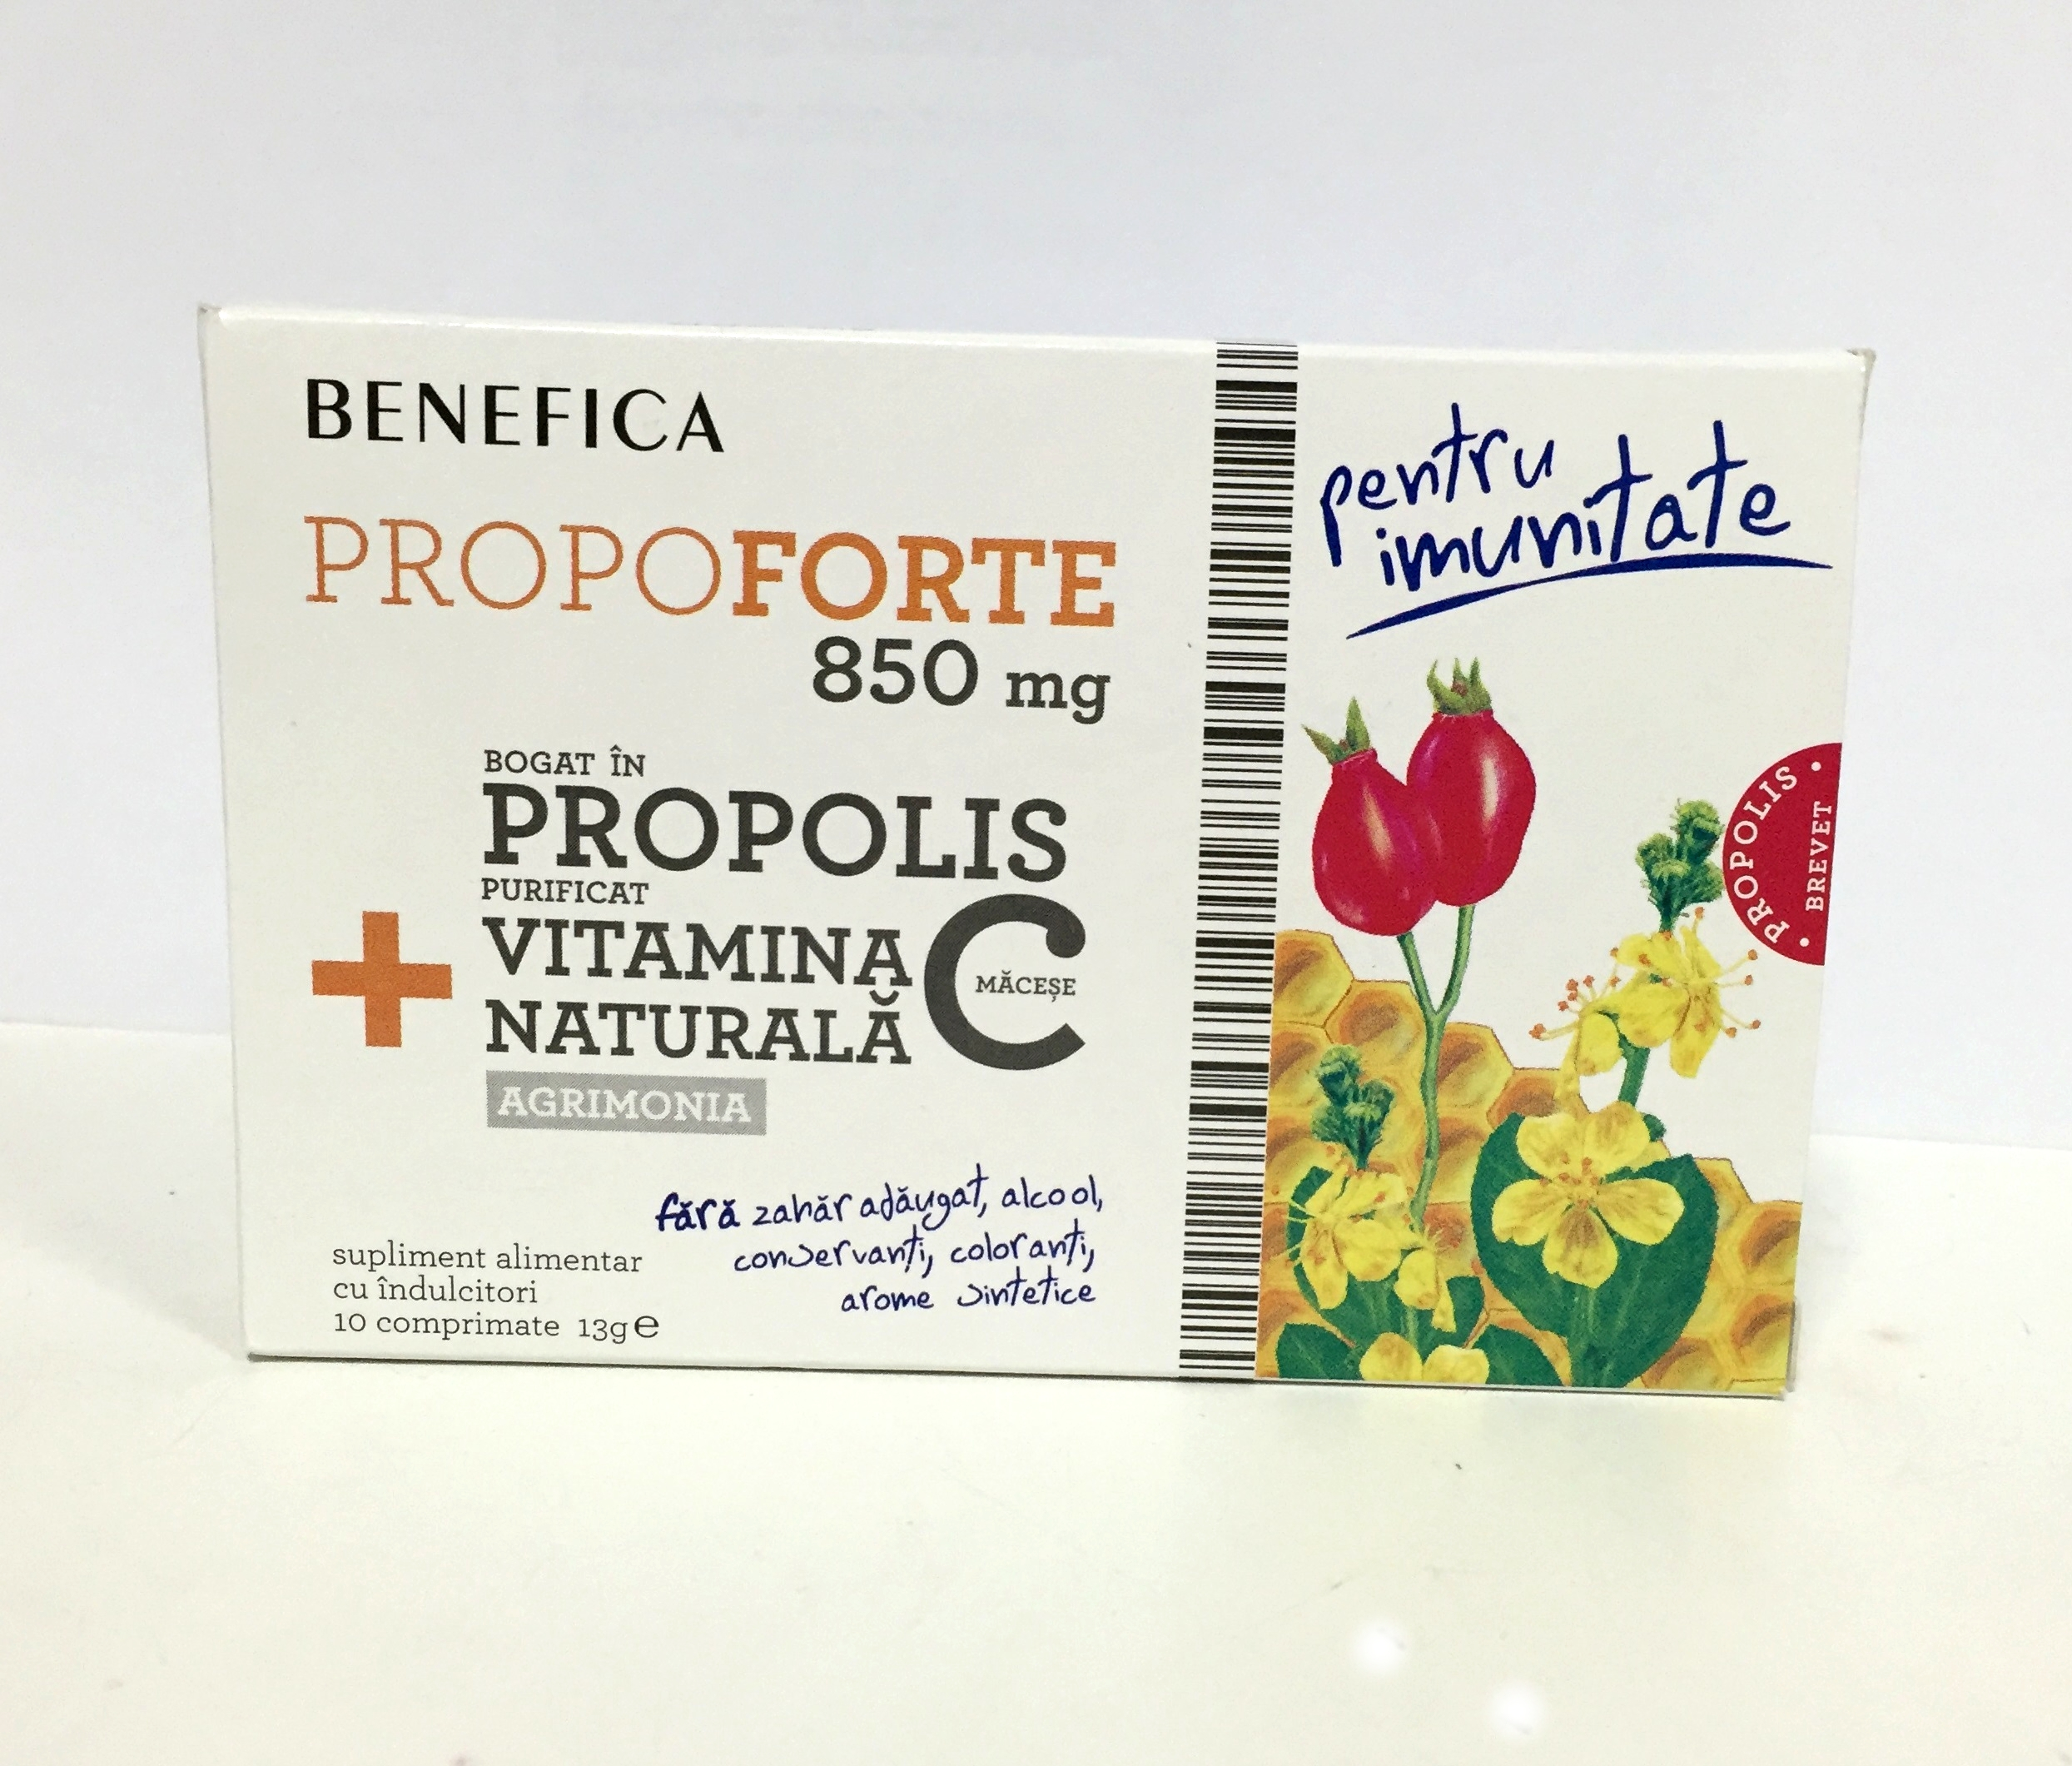 Propoforte 850 mg Benefica